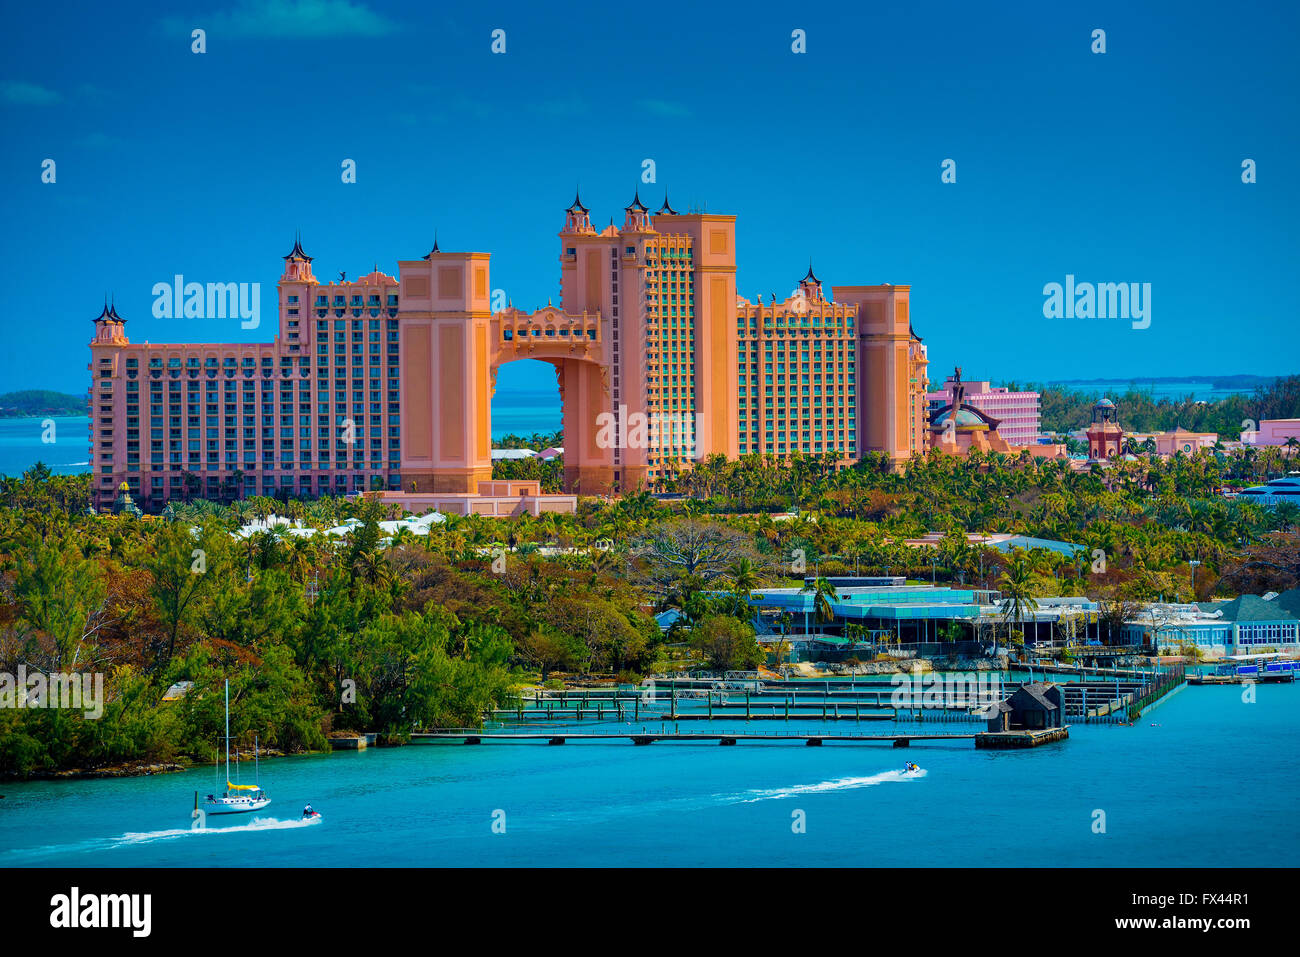 new casino hotel in nassau bahamas